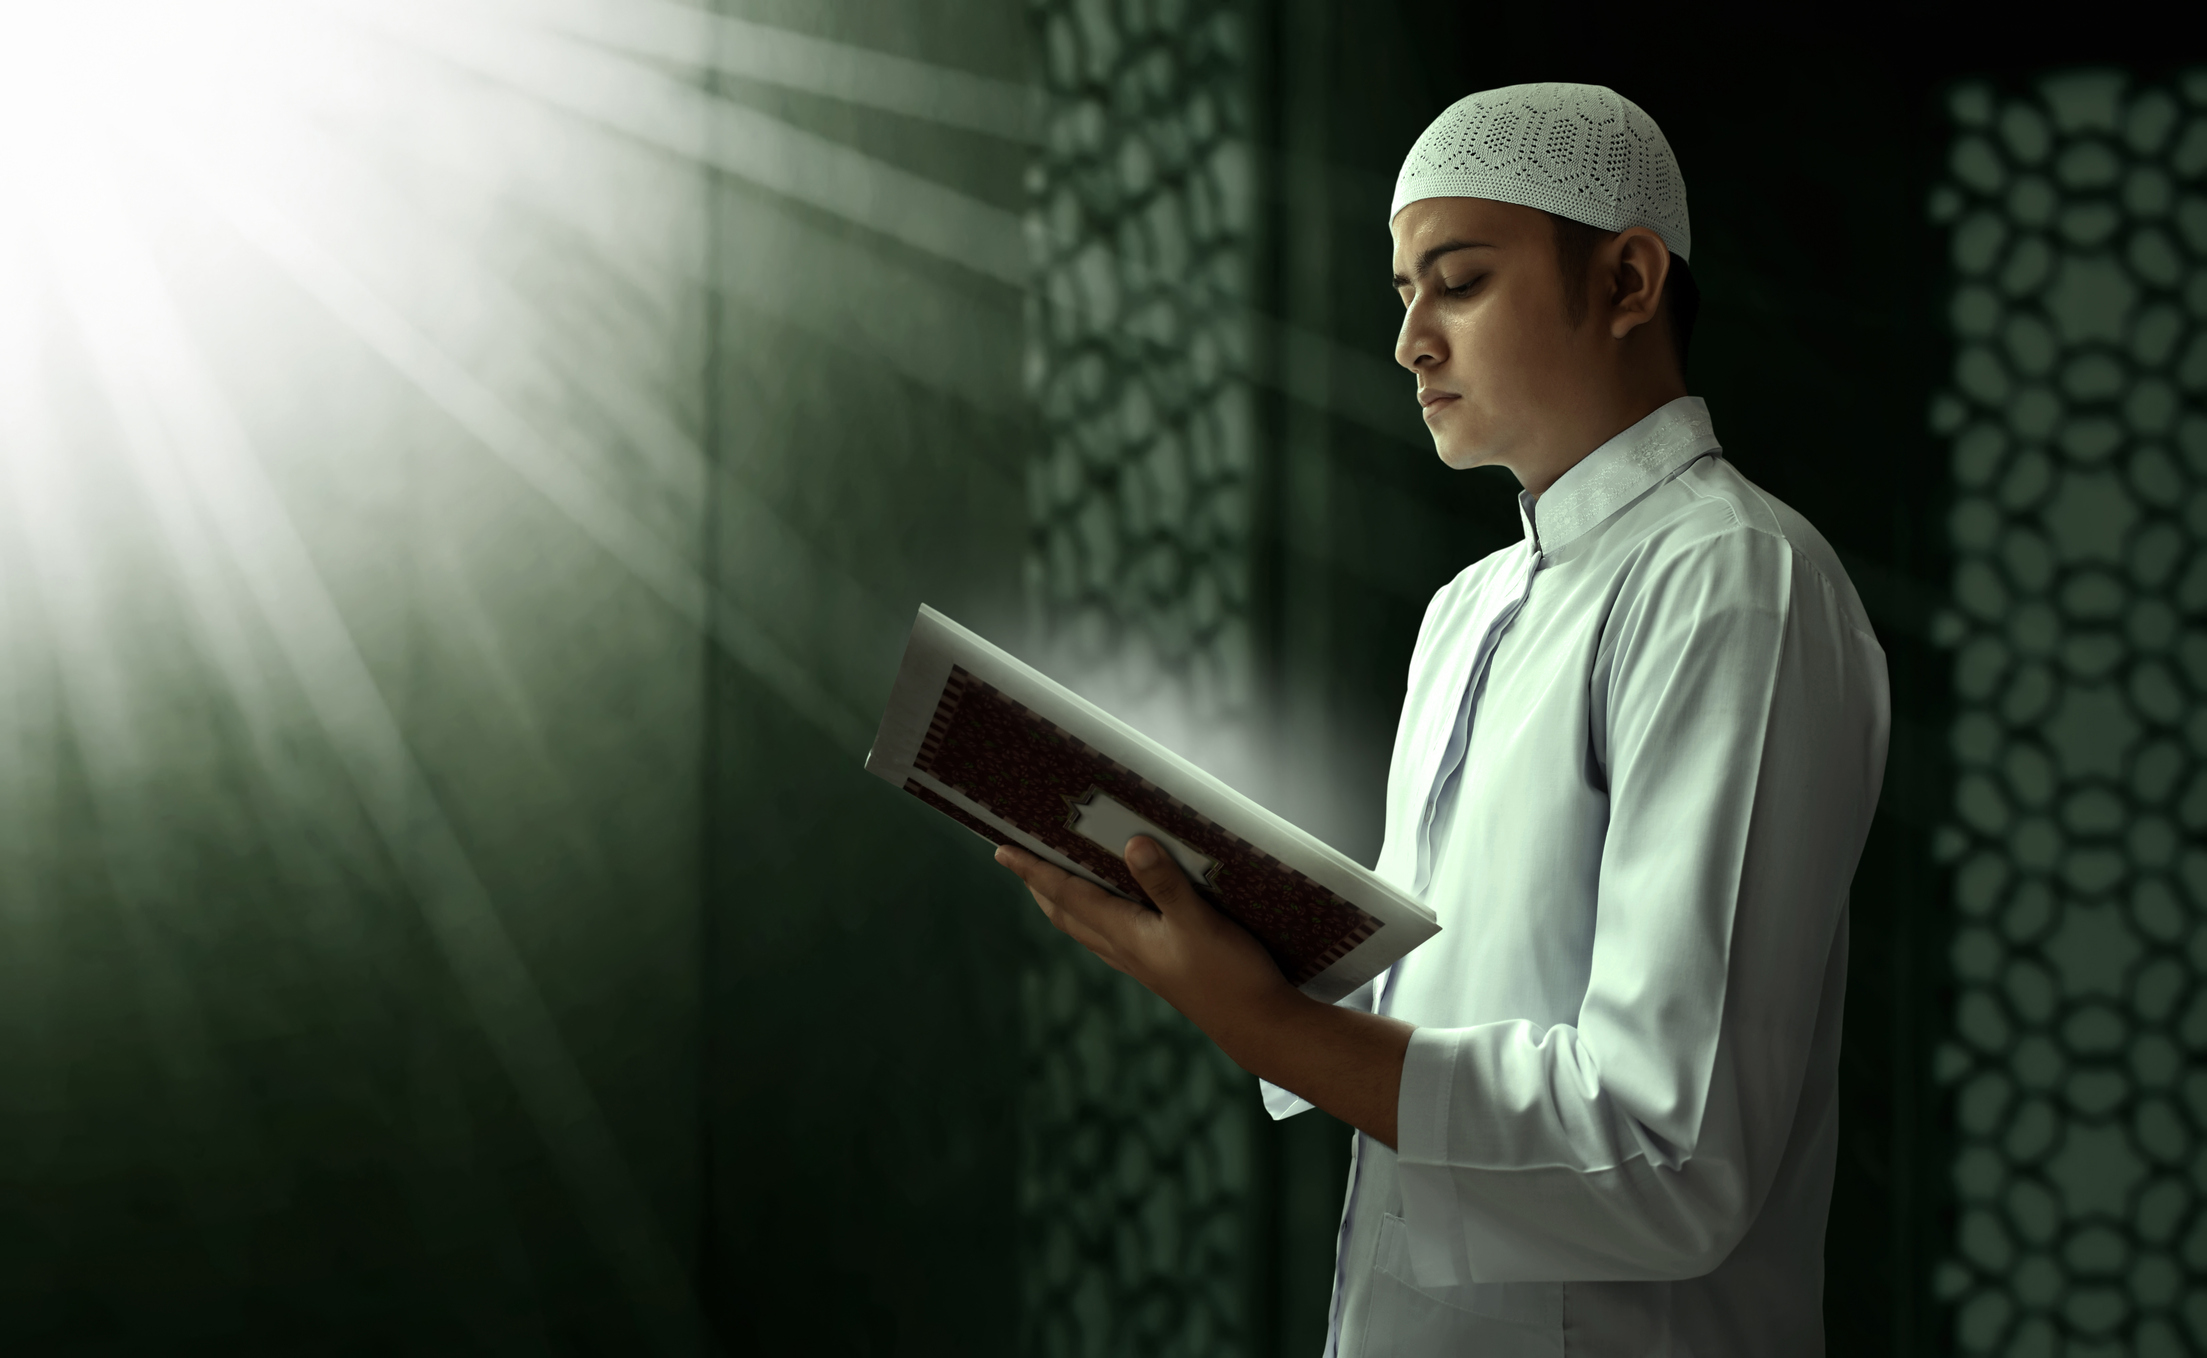 Islam is facing a wave of desertion by young Muslims suffering from a crisis of faith